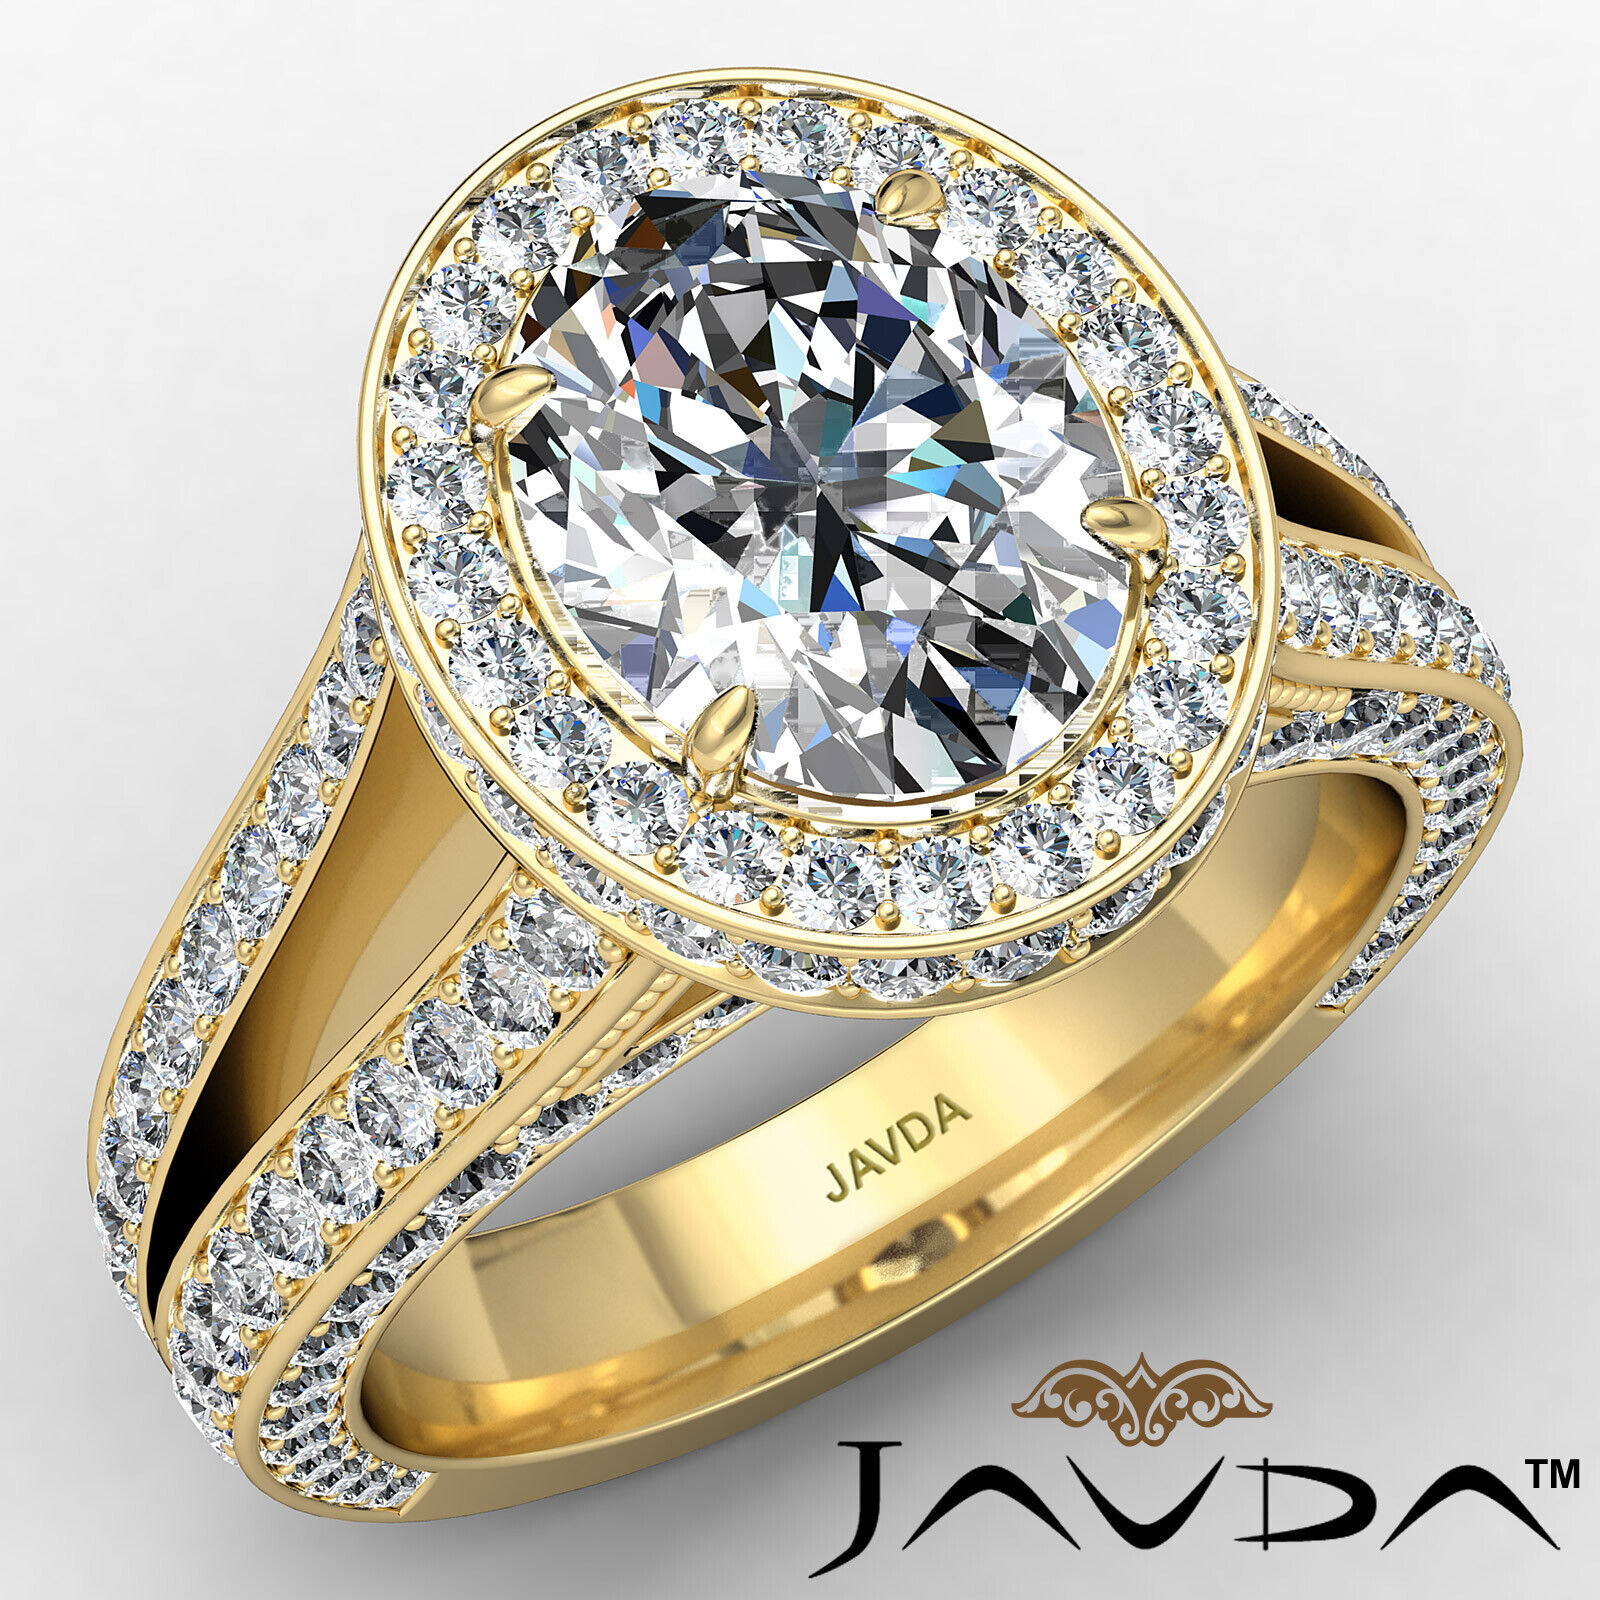 Halo Oval Diamond Engagement Ring GIA Certified F Color & SI1 clarity 2.31 ctw 1